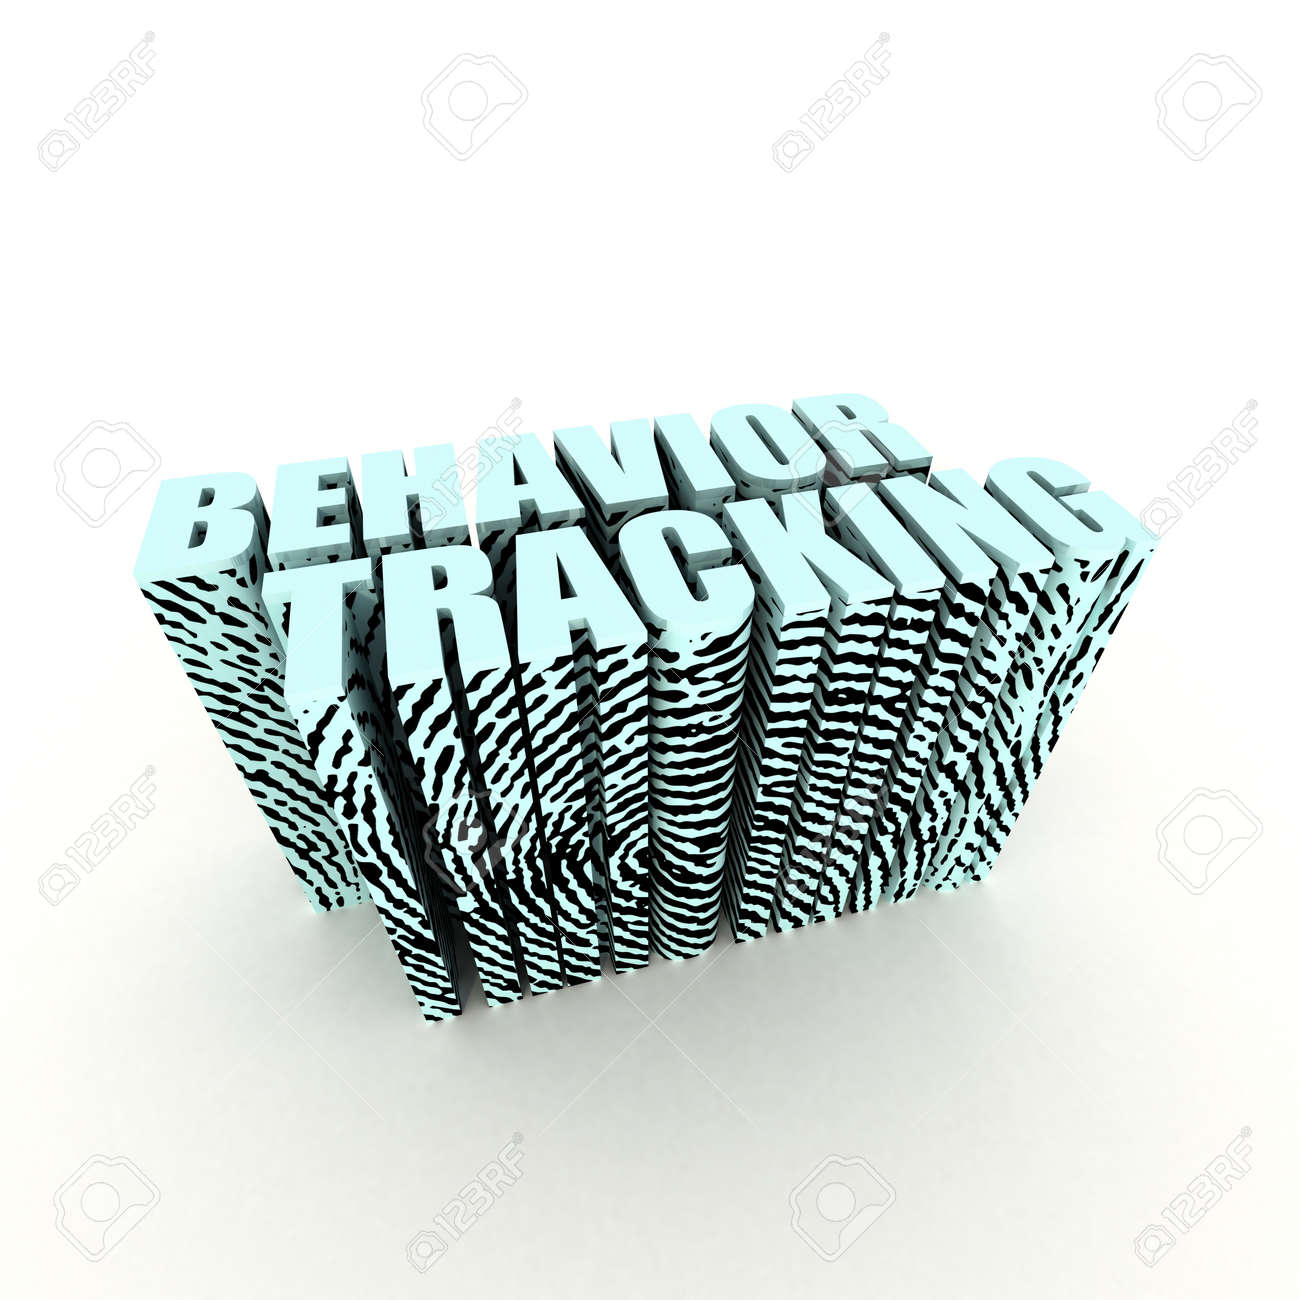 Behavior Tracking Text with Fingerprint on White Stock Photo - 10100778